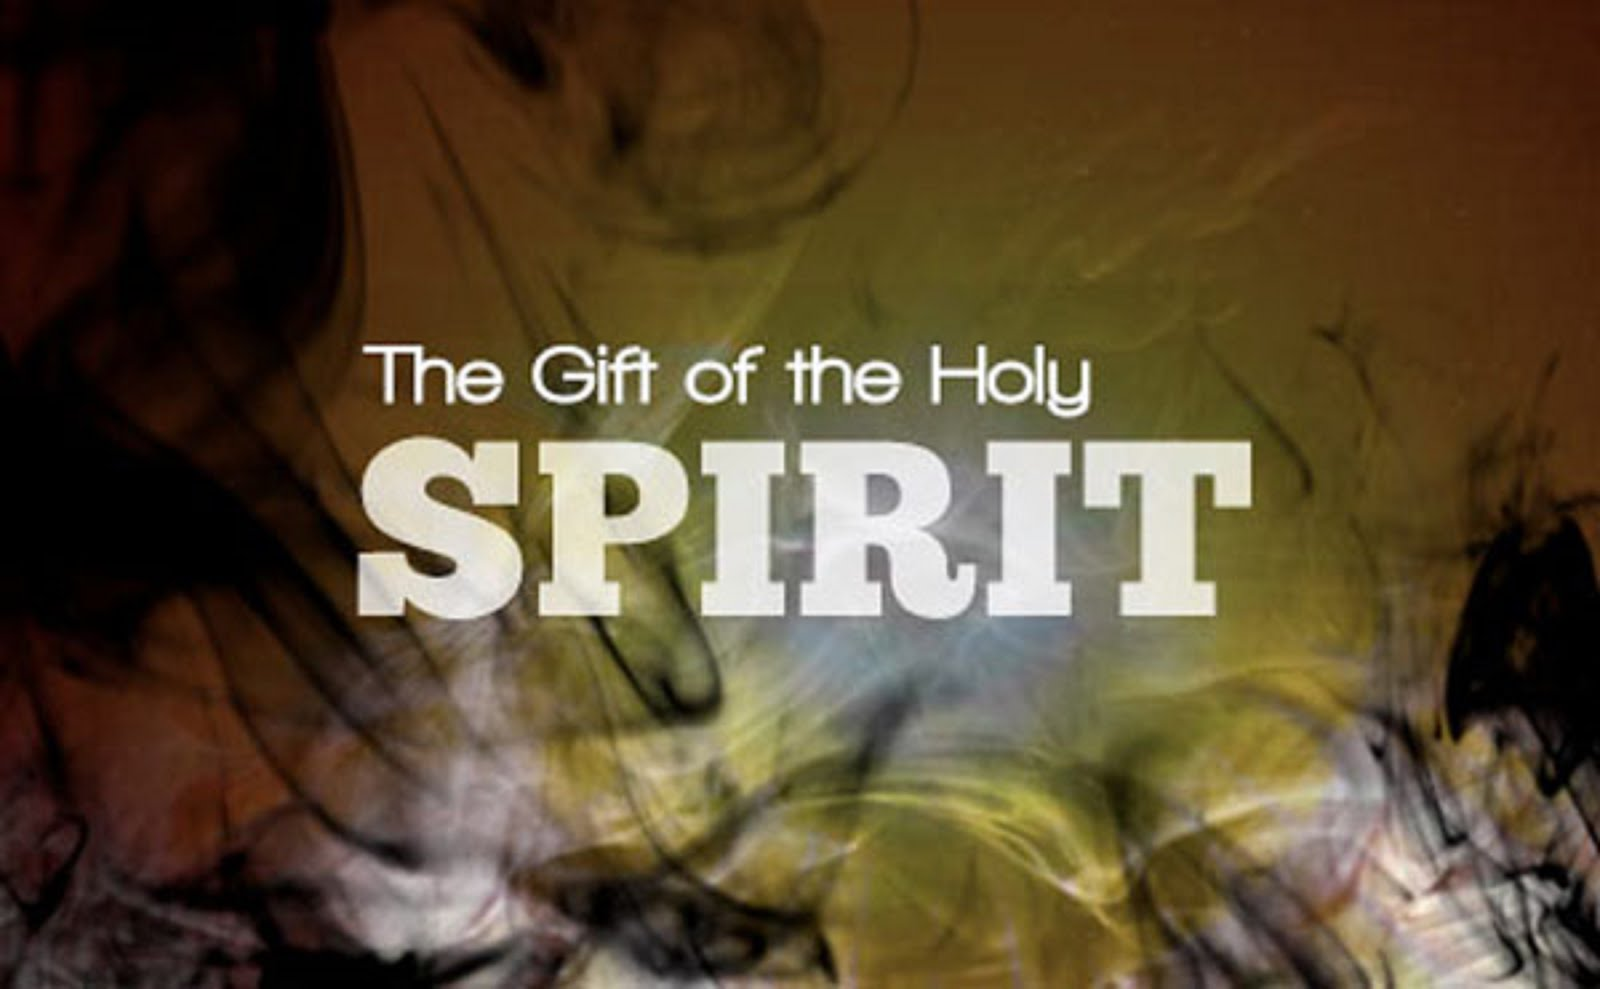 AND YOU WILL RECEIVE THE GIFT OF THE HOLY SPIRIT